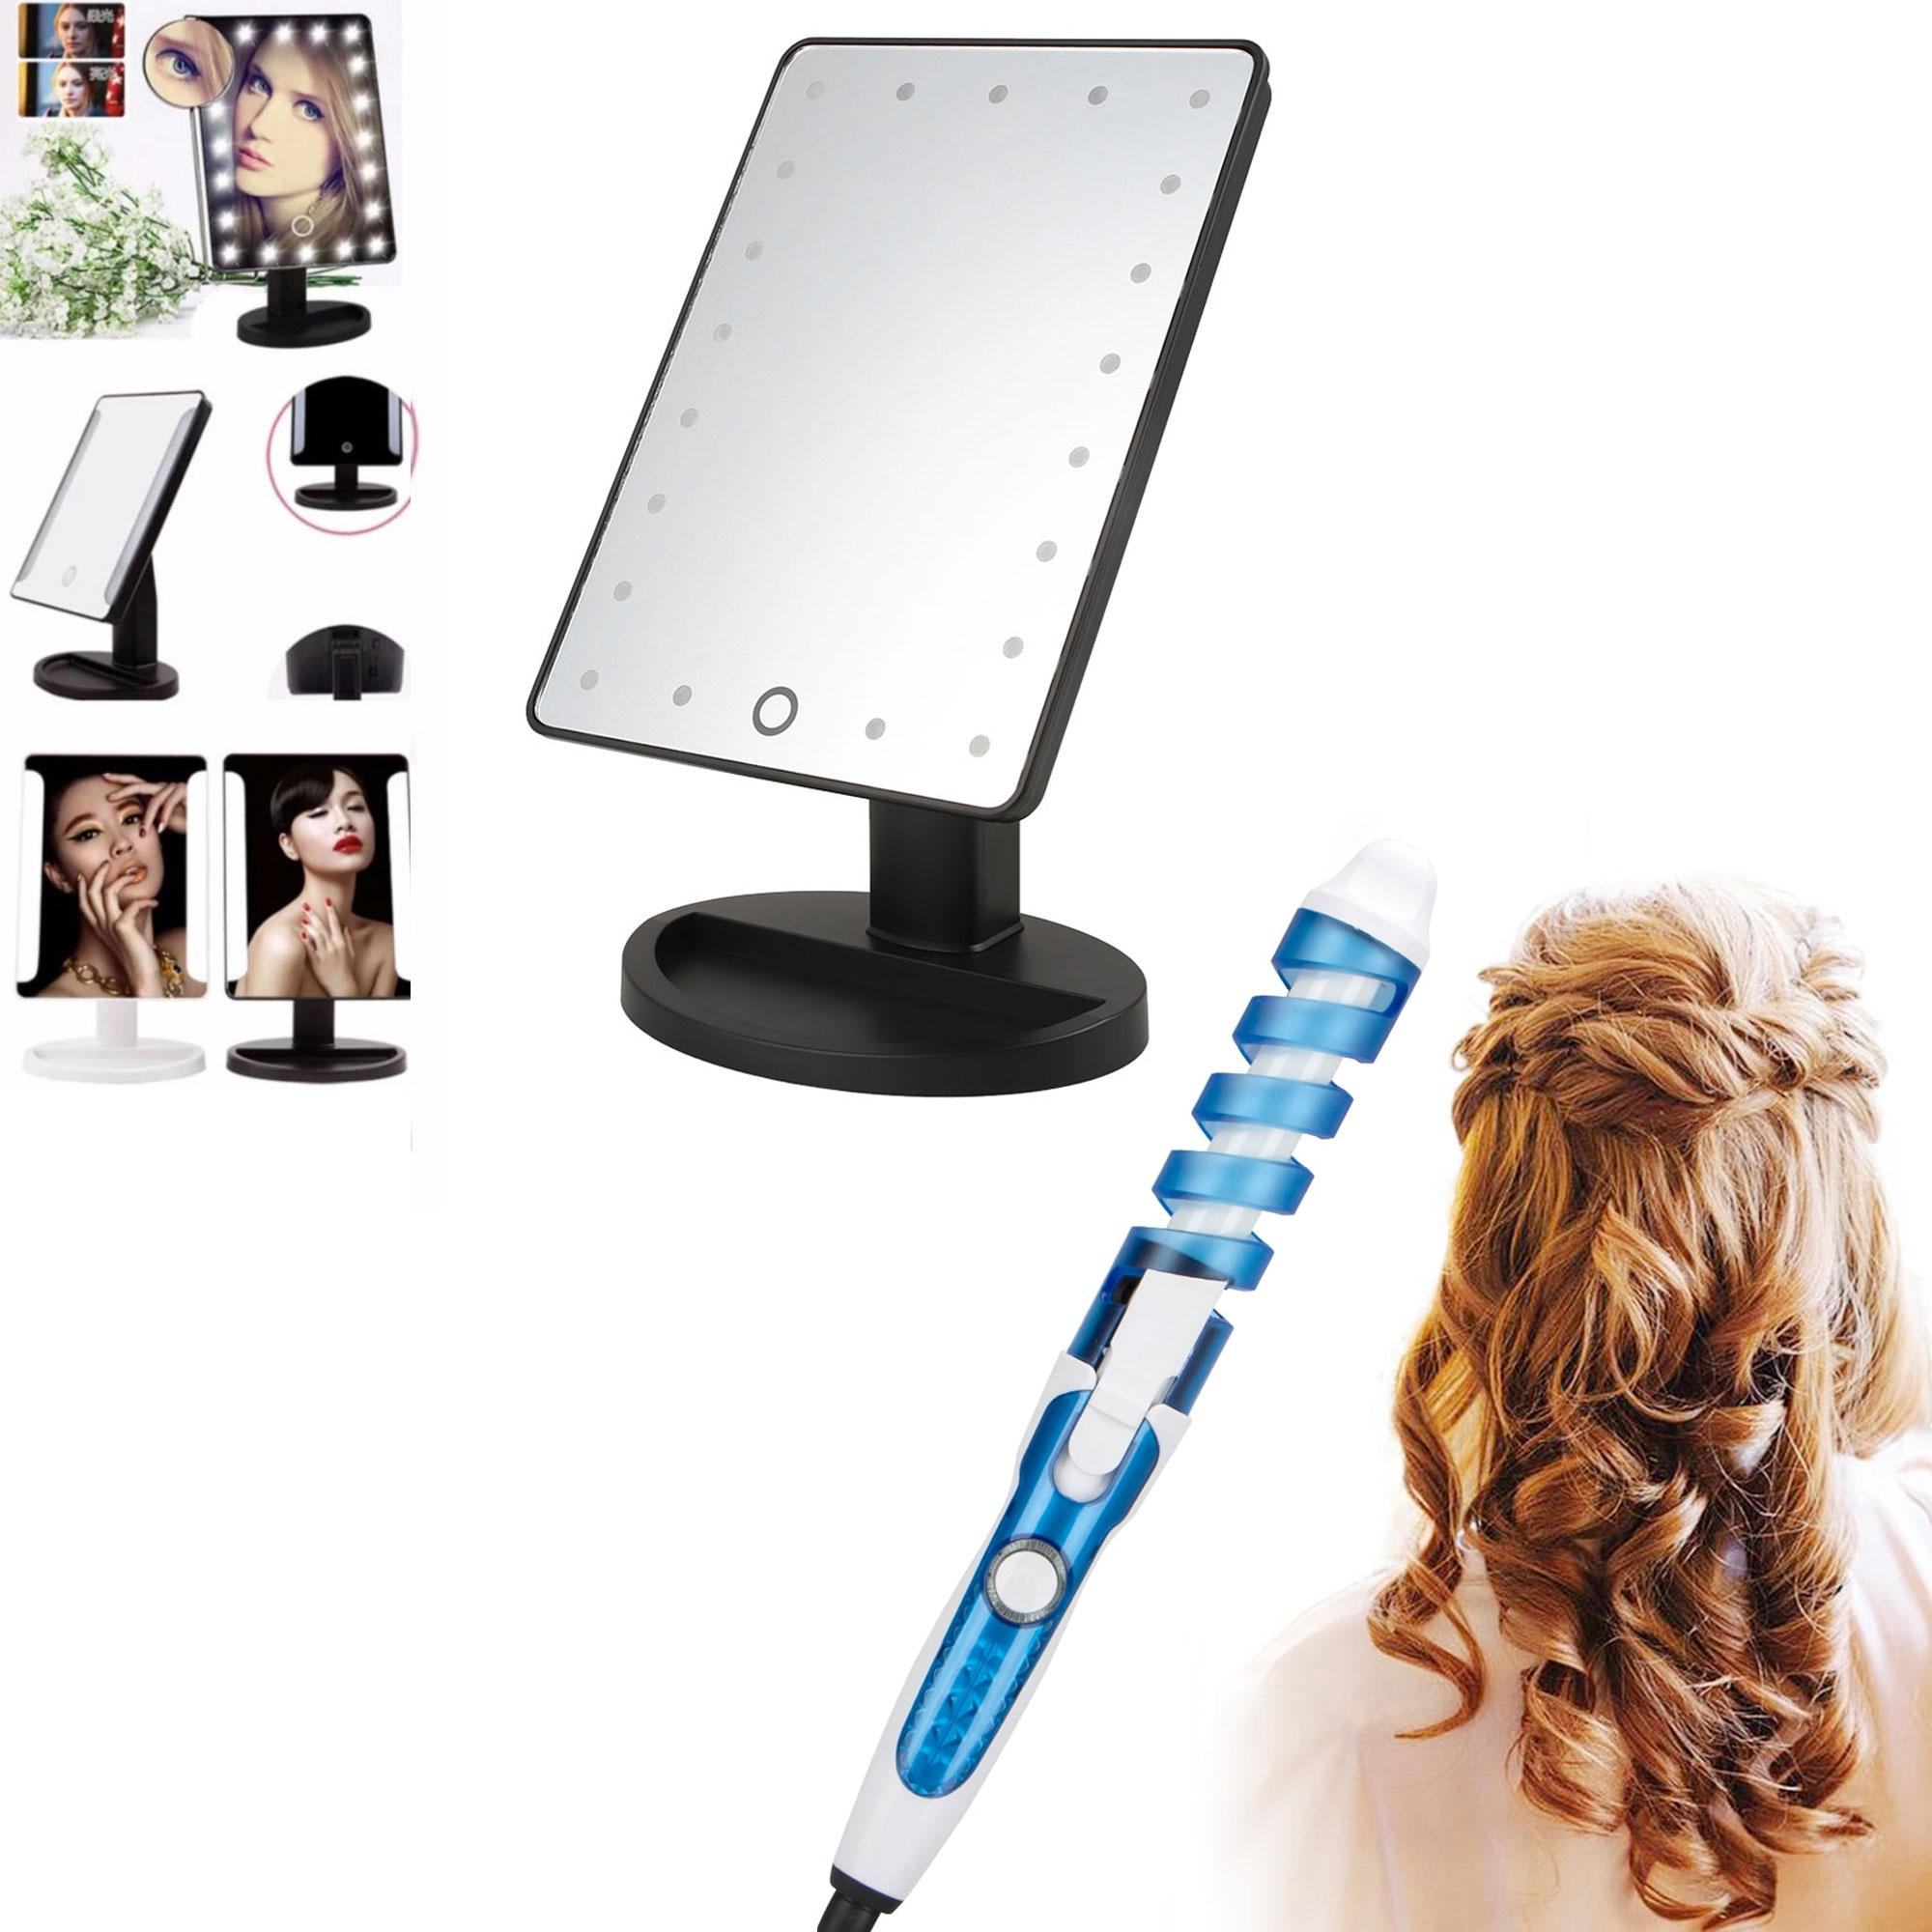 XR-1608 Make Up Vanity Illuminated Desktop Table Makeup Stand Large LED Mirror with 16 LED Light (Black) with RZ-118 Professional Hair Curler (Blue/White) Philippines